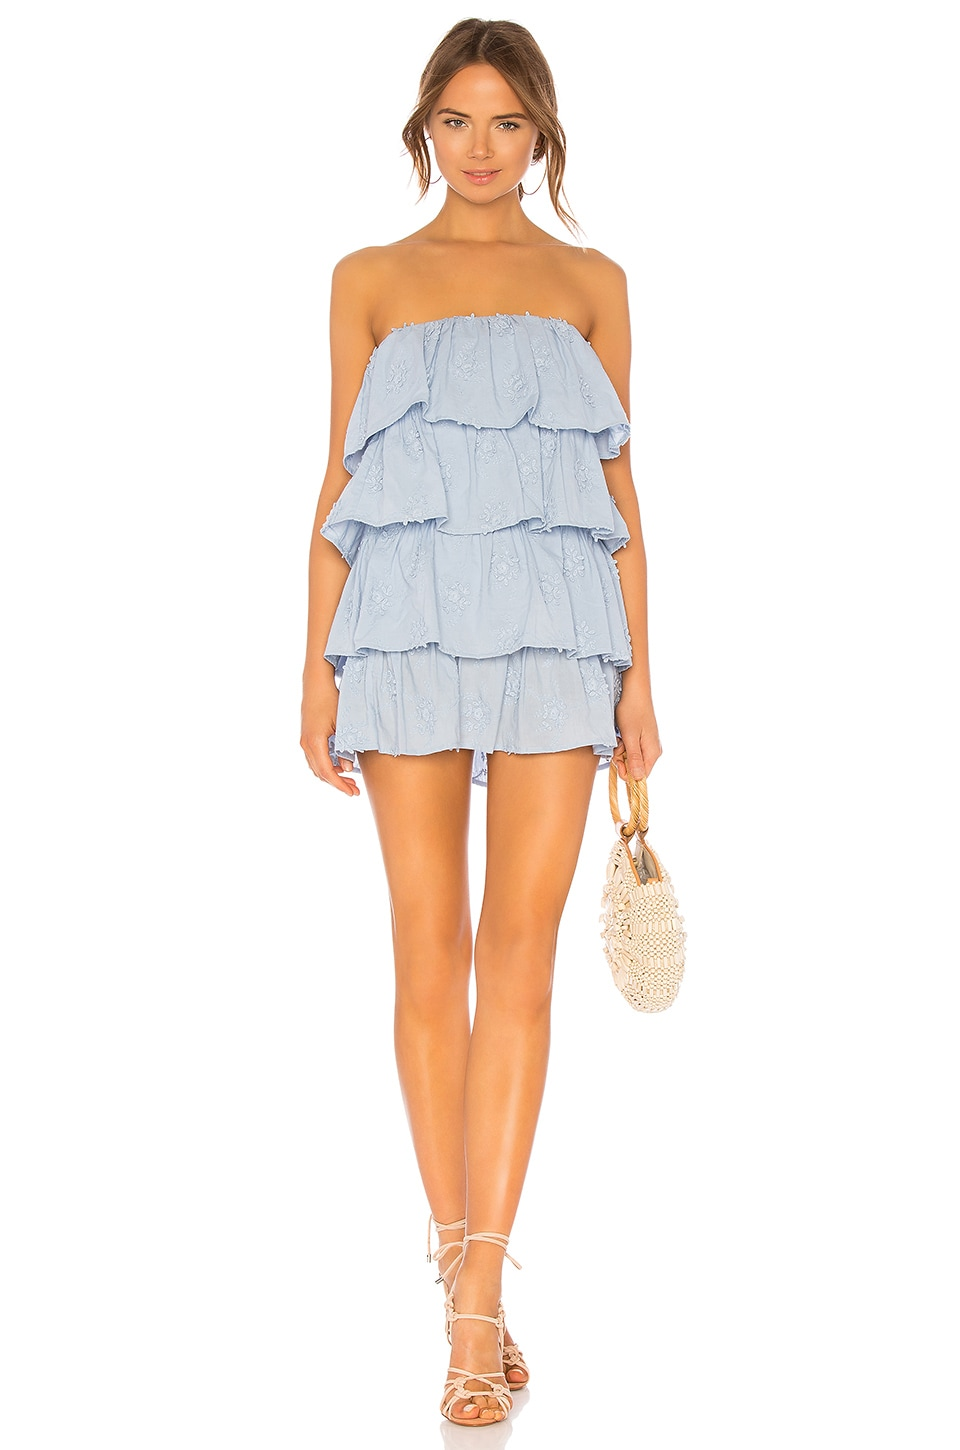 Tularosa Finley Dress in Light Blue